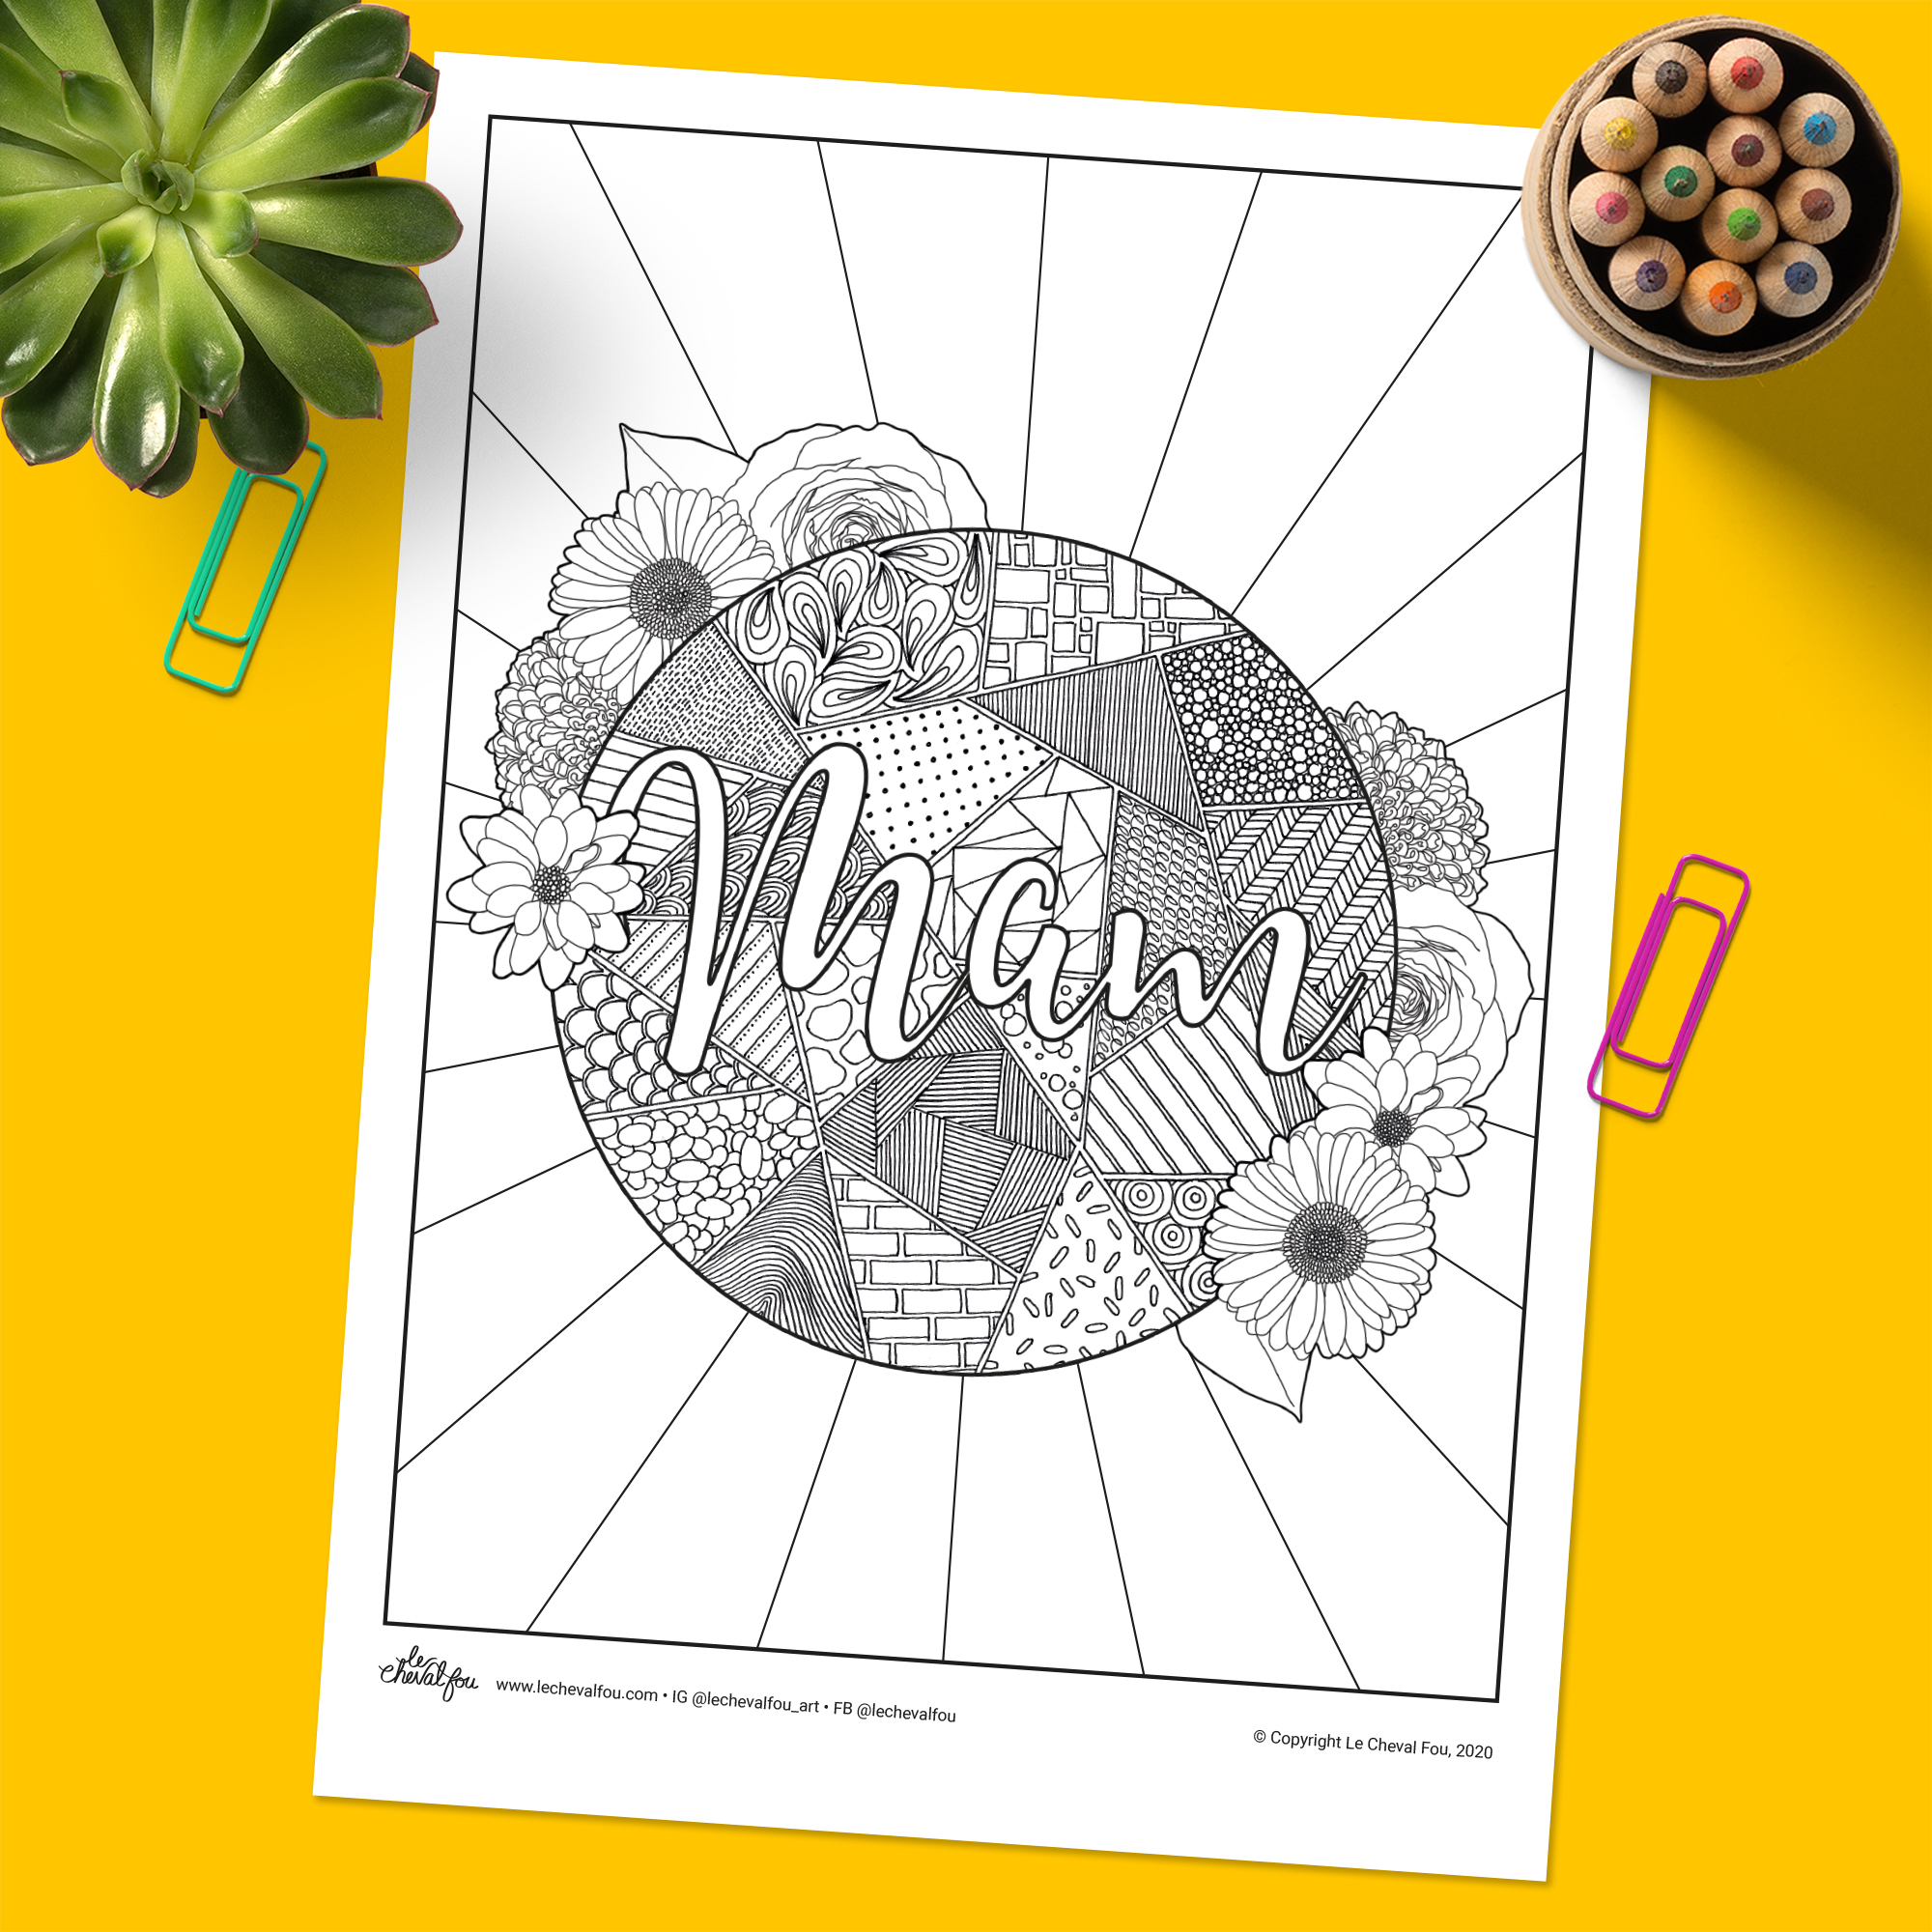 This colouring sheet is a great activity to do with (or without) your kids during lockdown. Alternatively it yourself. So grab a spare few minutes, your pencils and a cuppa and take pleasure in mindfulness and colouring in this gorgeous design before sending it to your own Mam.